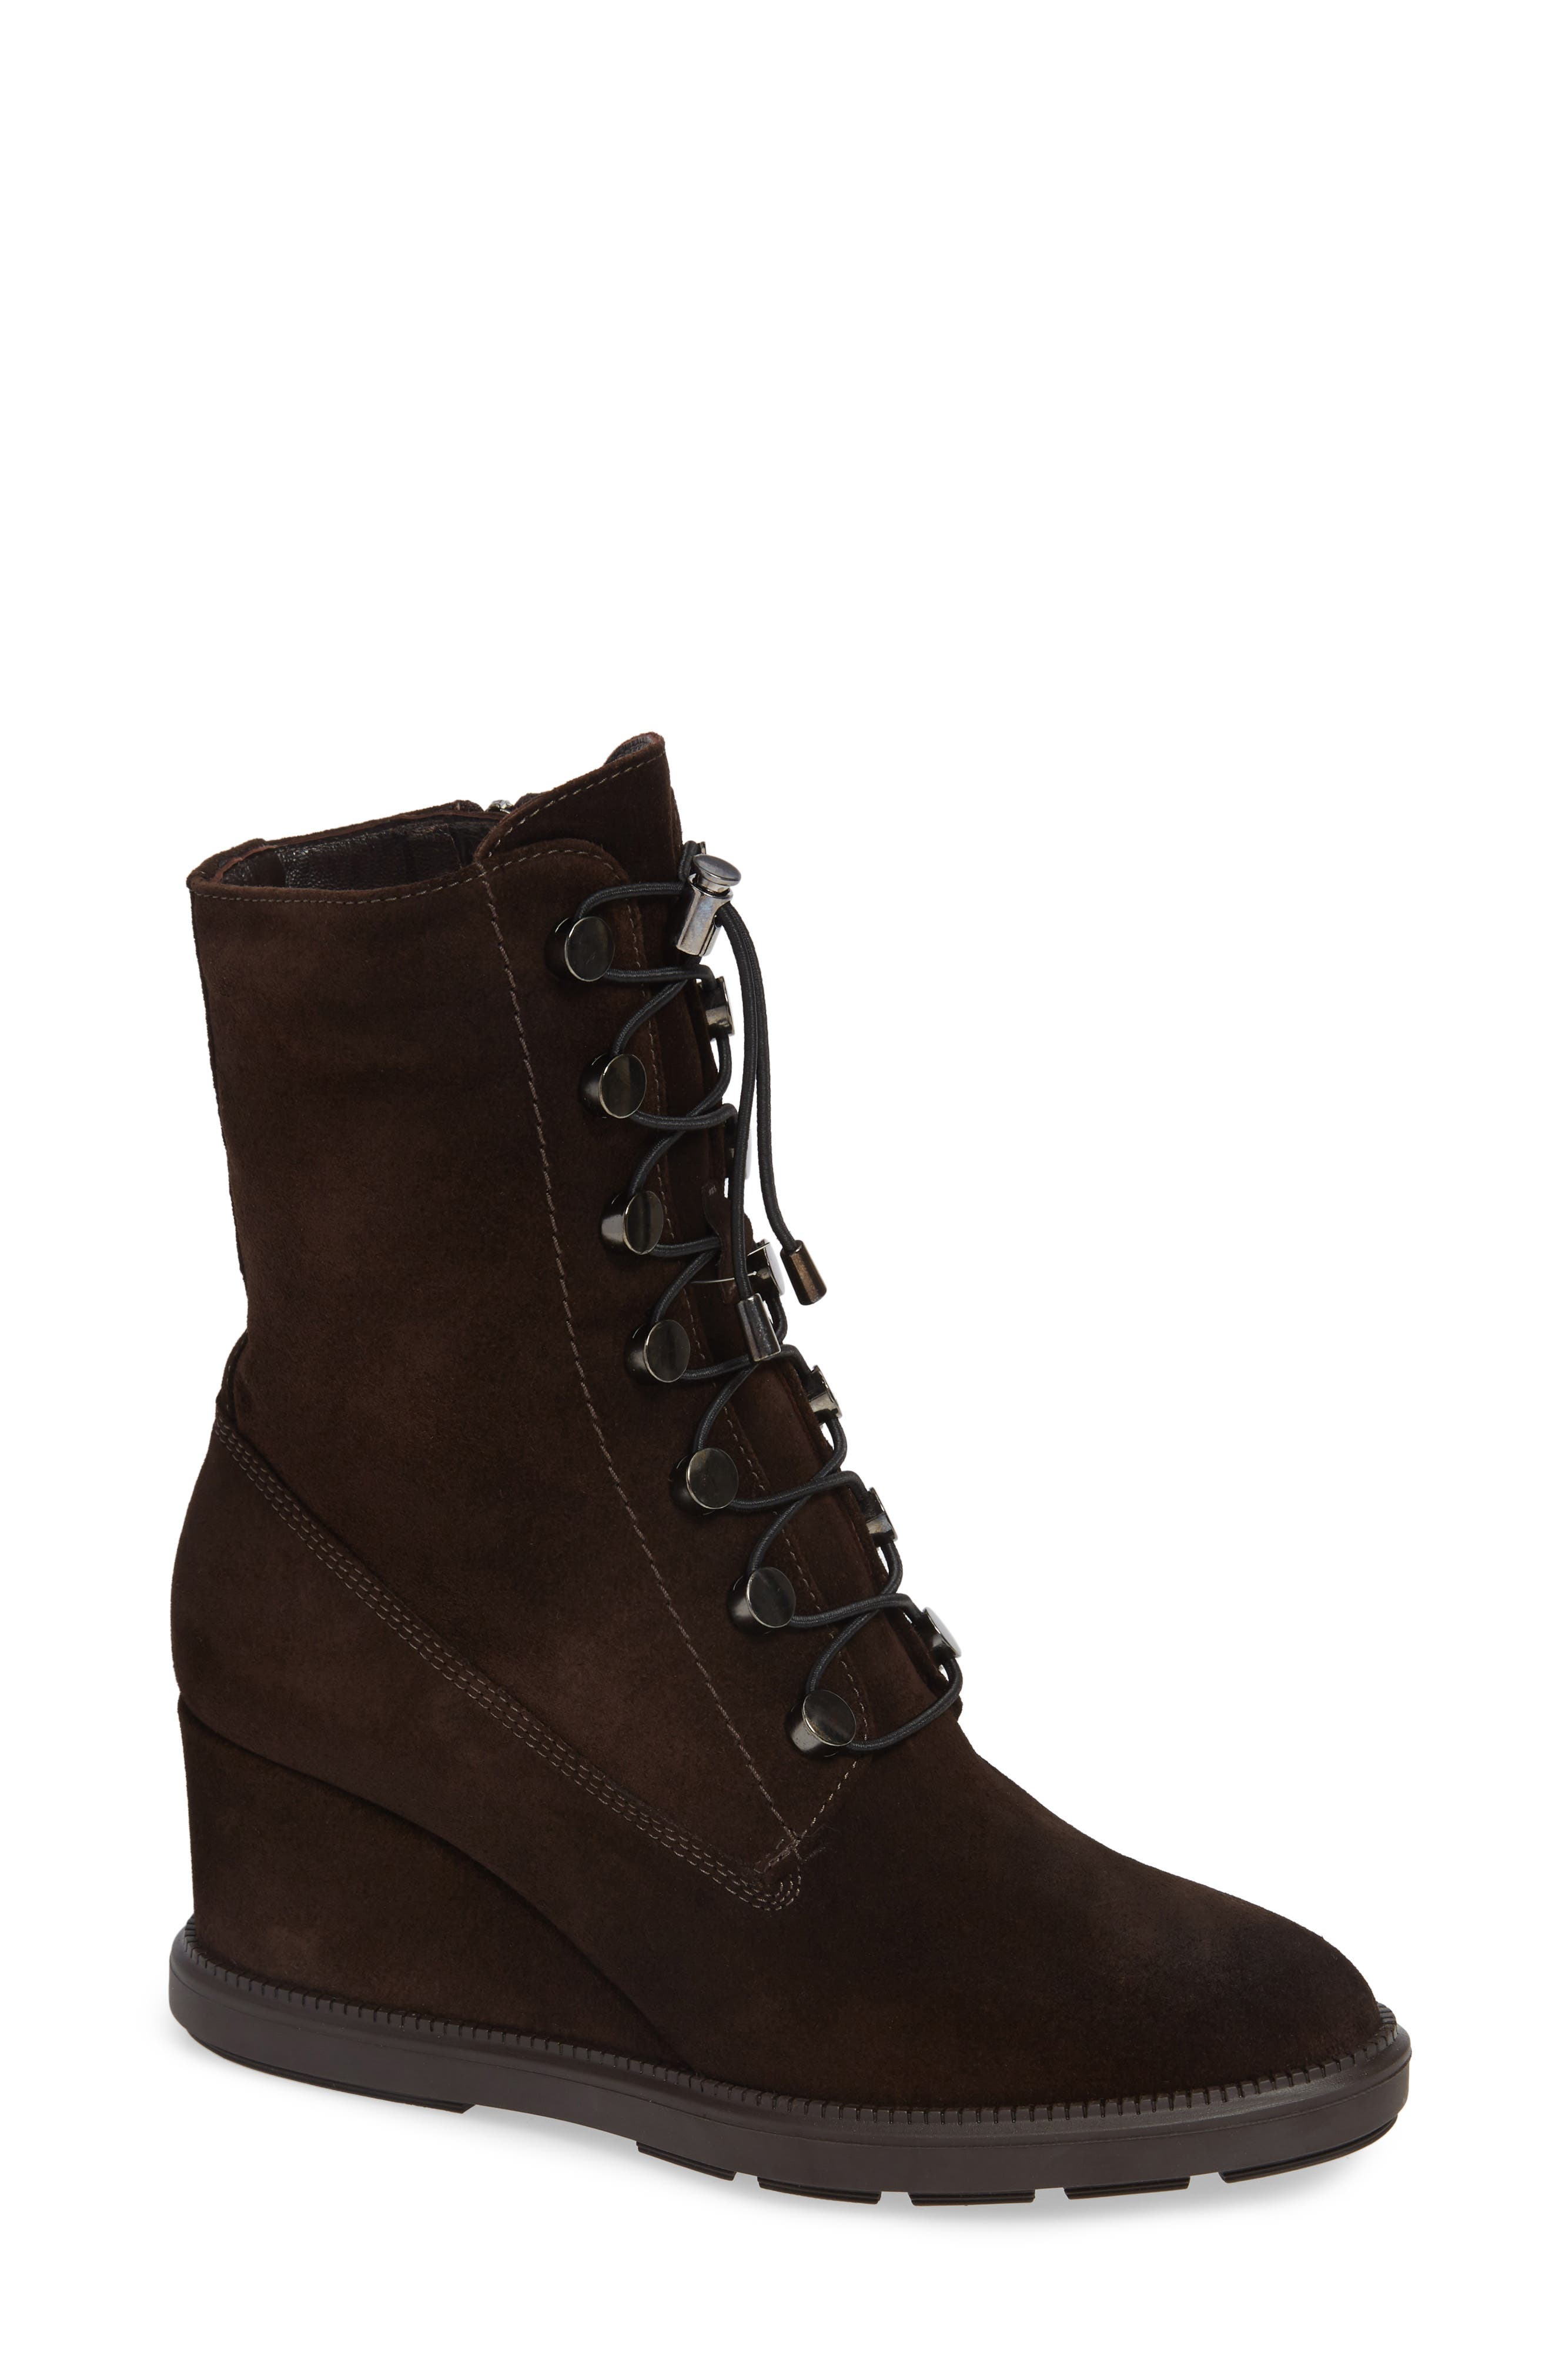 Campbell Wedge Boot,                             Main thumbnail 1, color,                             ESPRESSO SUEDE